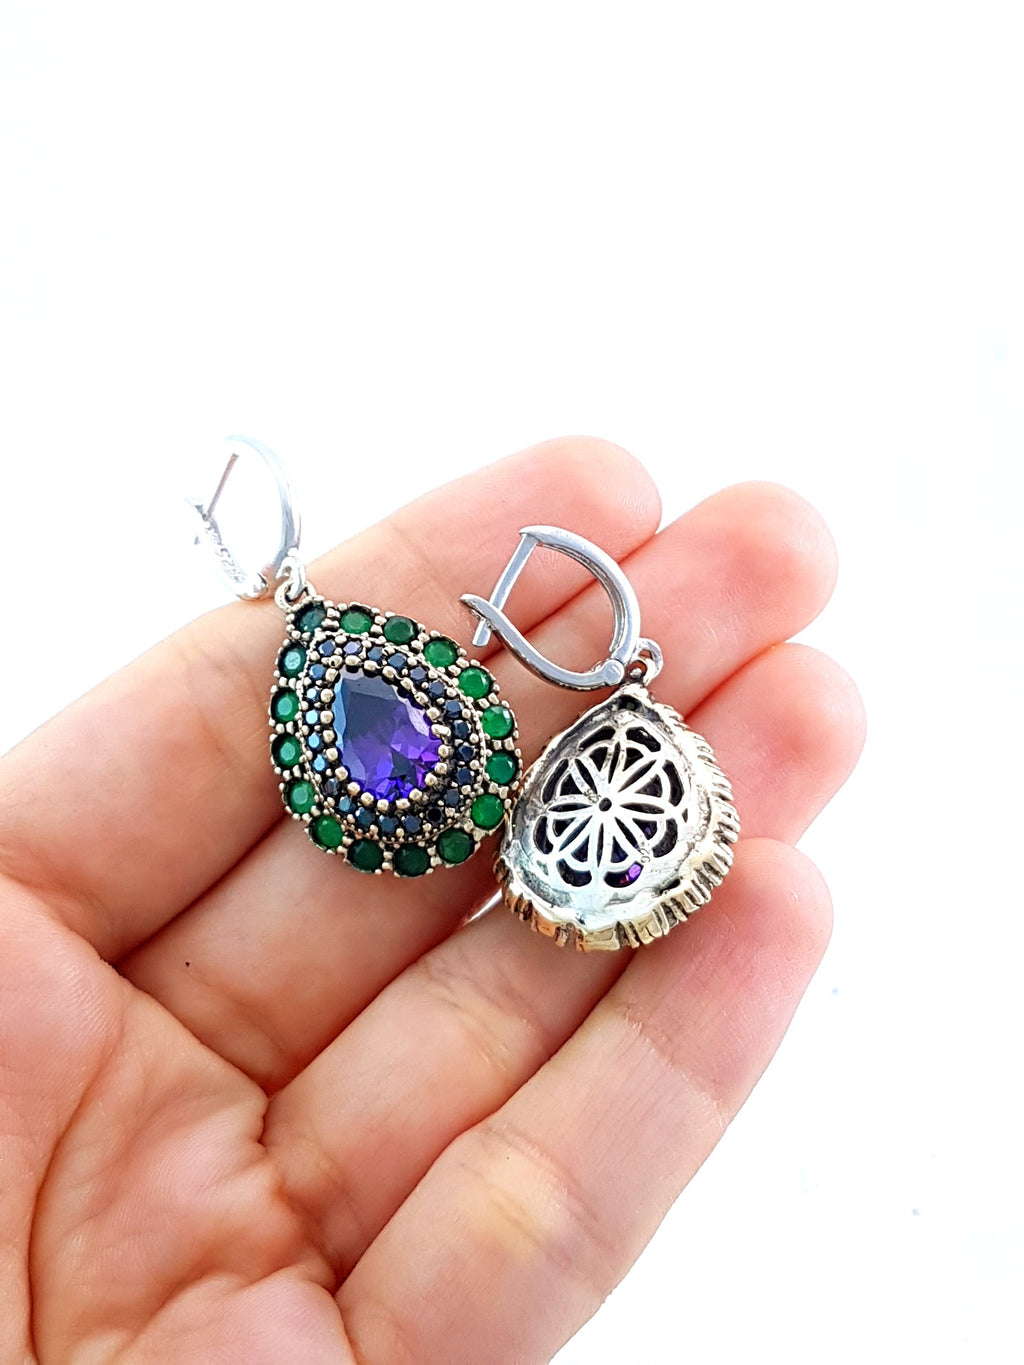 Turkish Wholesale Handmade 925 Sterling Silver Jewelry hurrem Sultan BN Gift 2116 - Turkishsilverjewelry